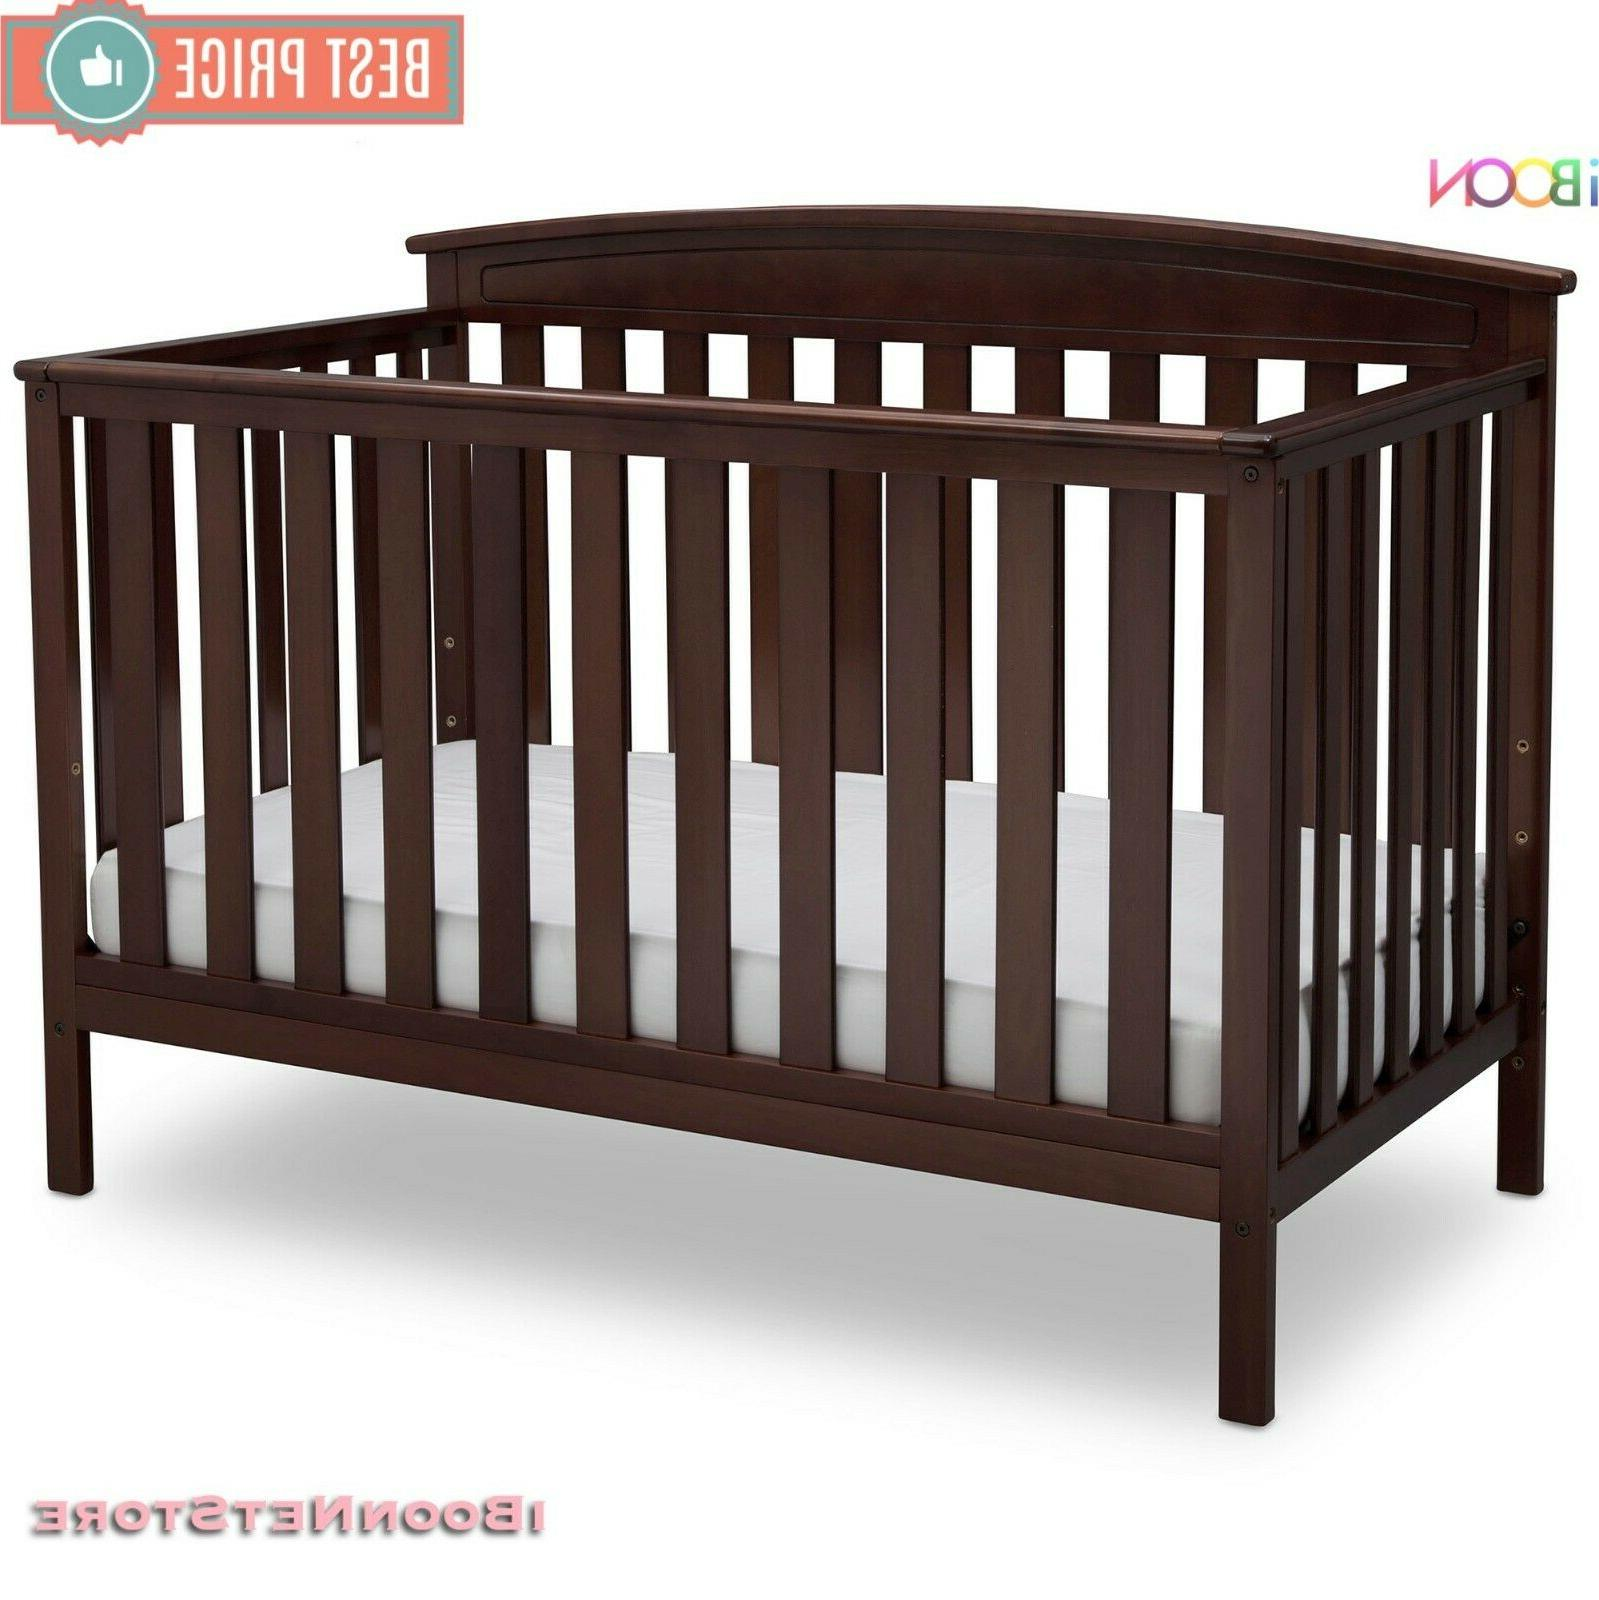 Baby Crib 1 Sold Convert to BED Colors Adjustable